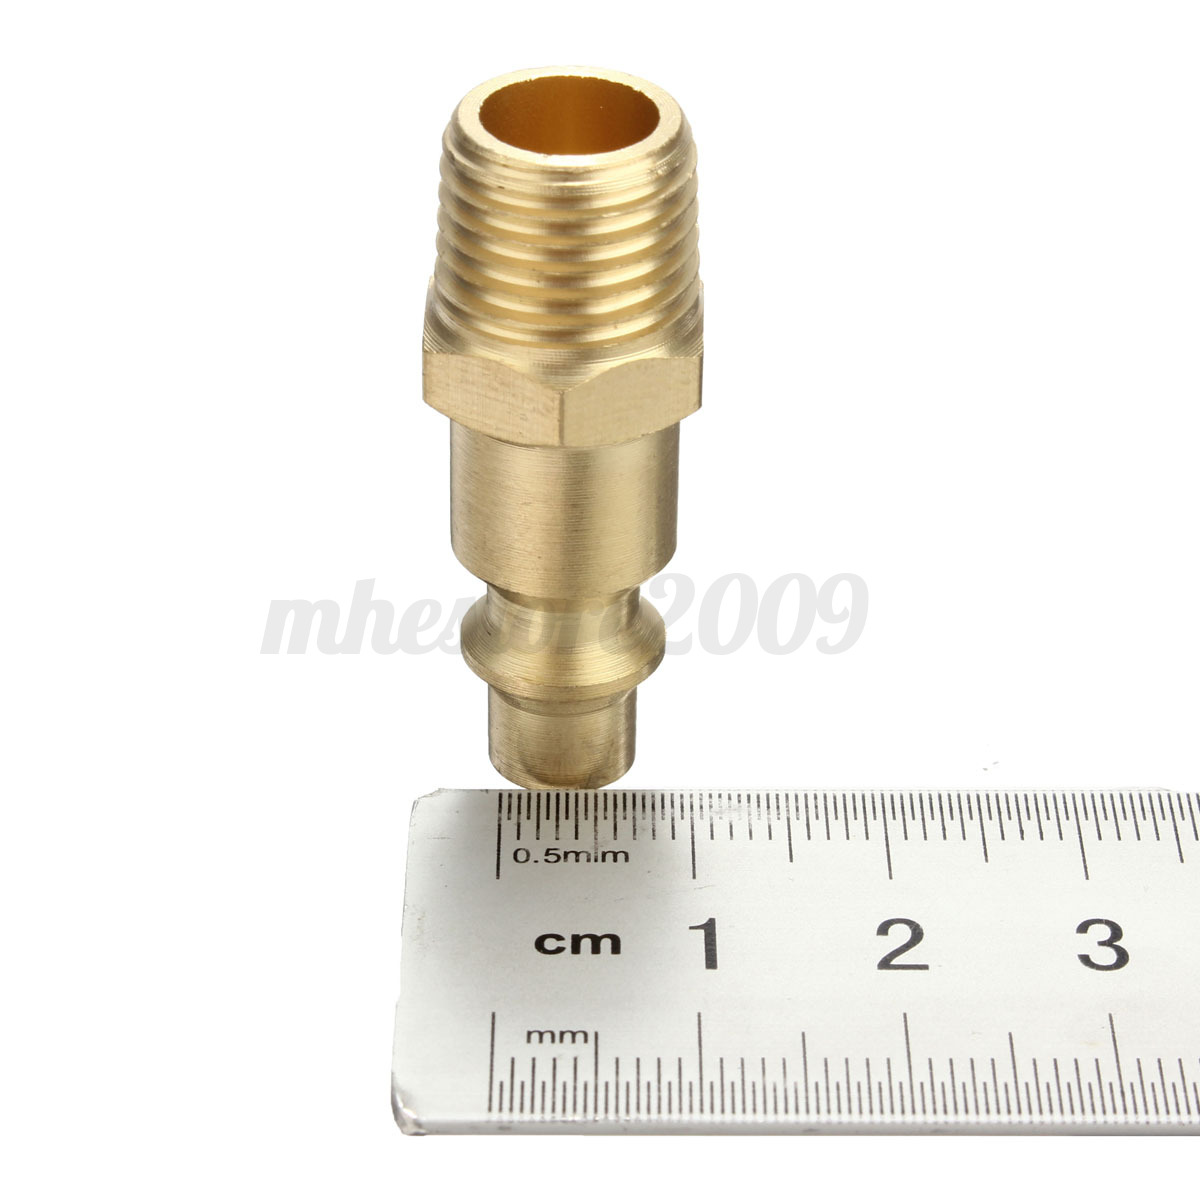 Pcs industrial solid brass air fittings quot npt male